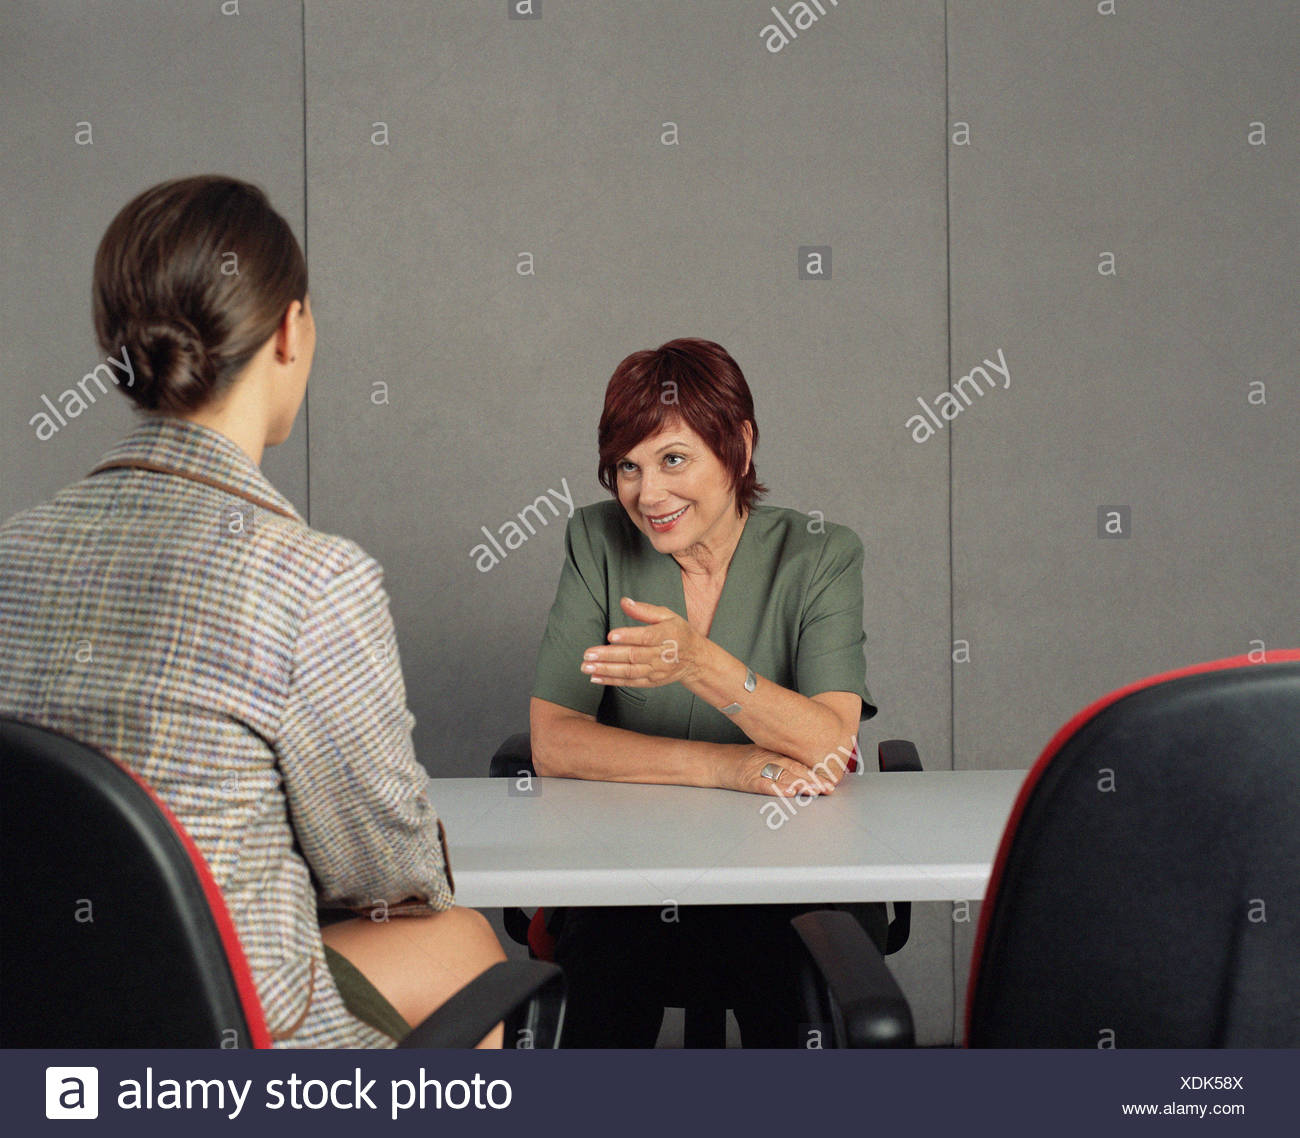 Interviewer asking a question Stock Photo